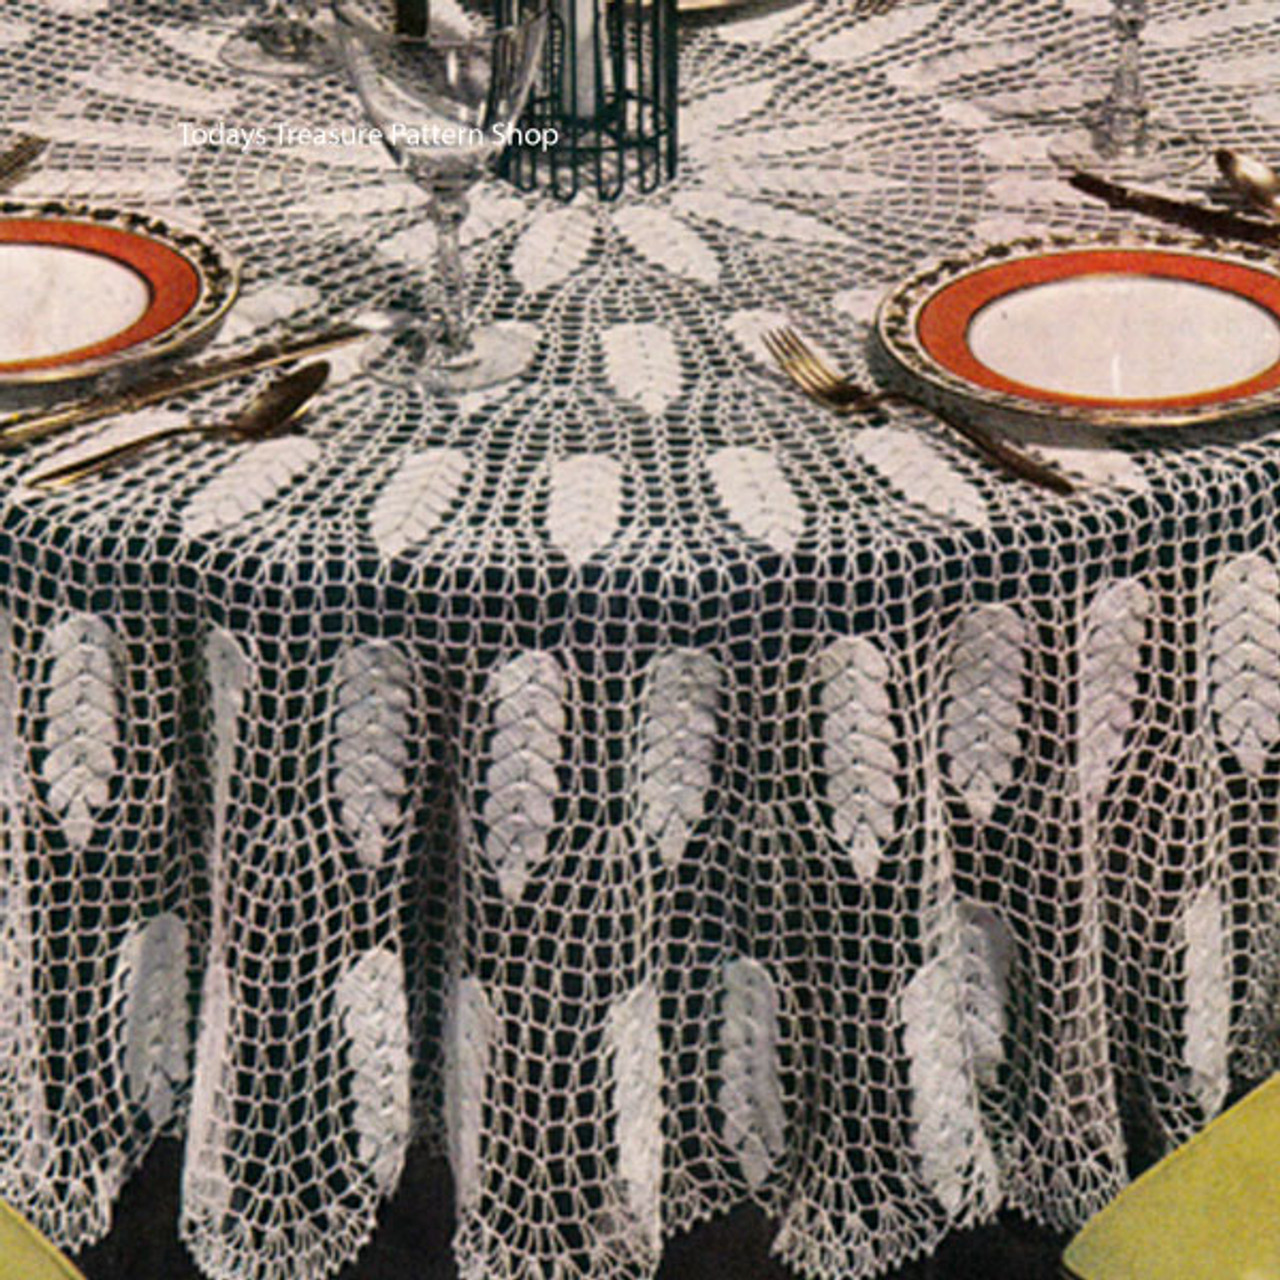 Vintage Crocheted Round Tablecloth Pattern from Coats & Clarks